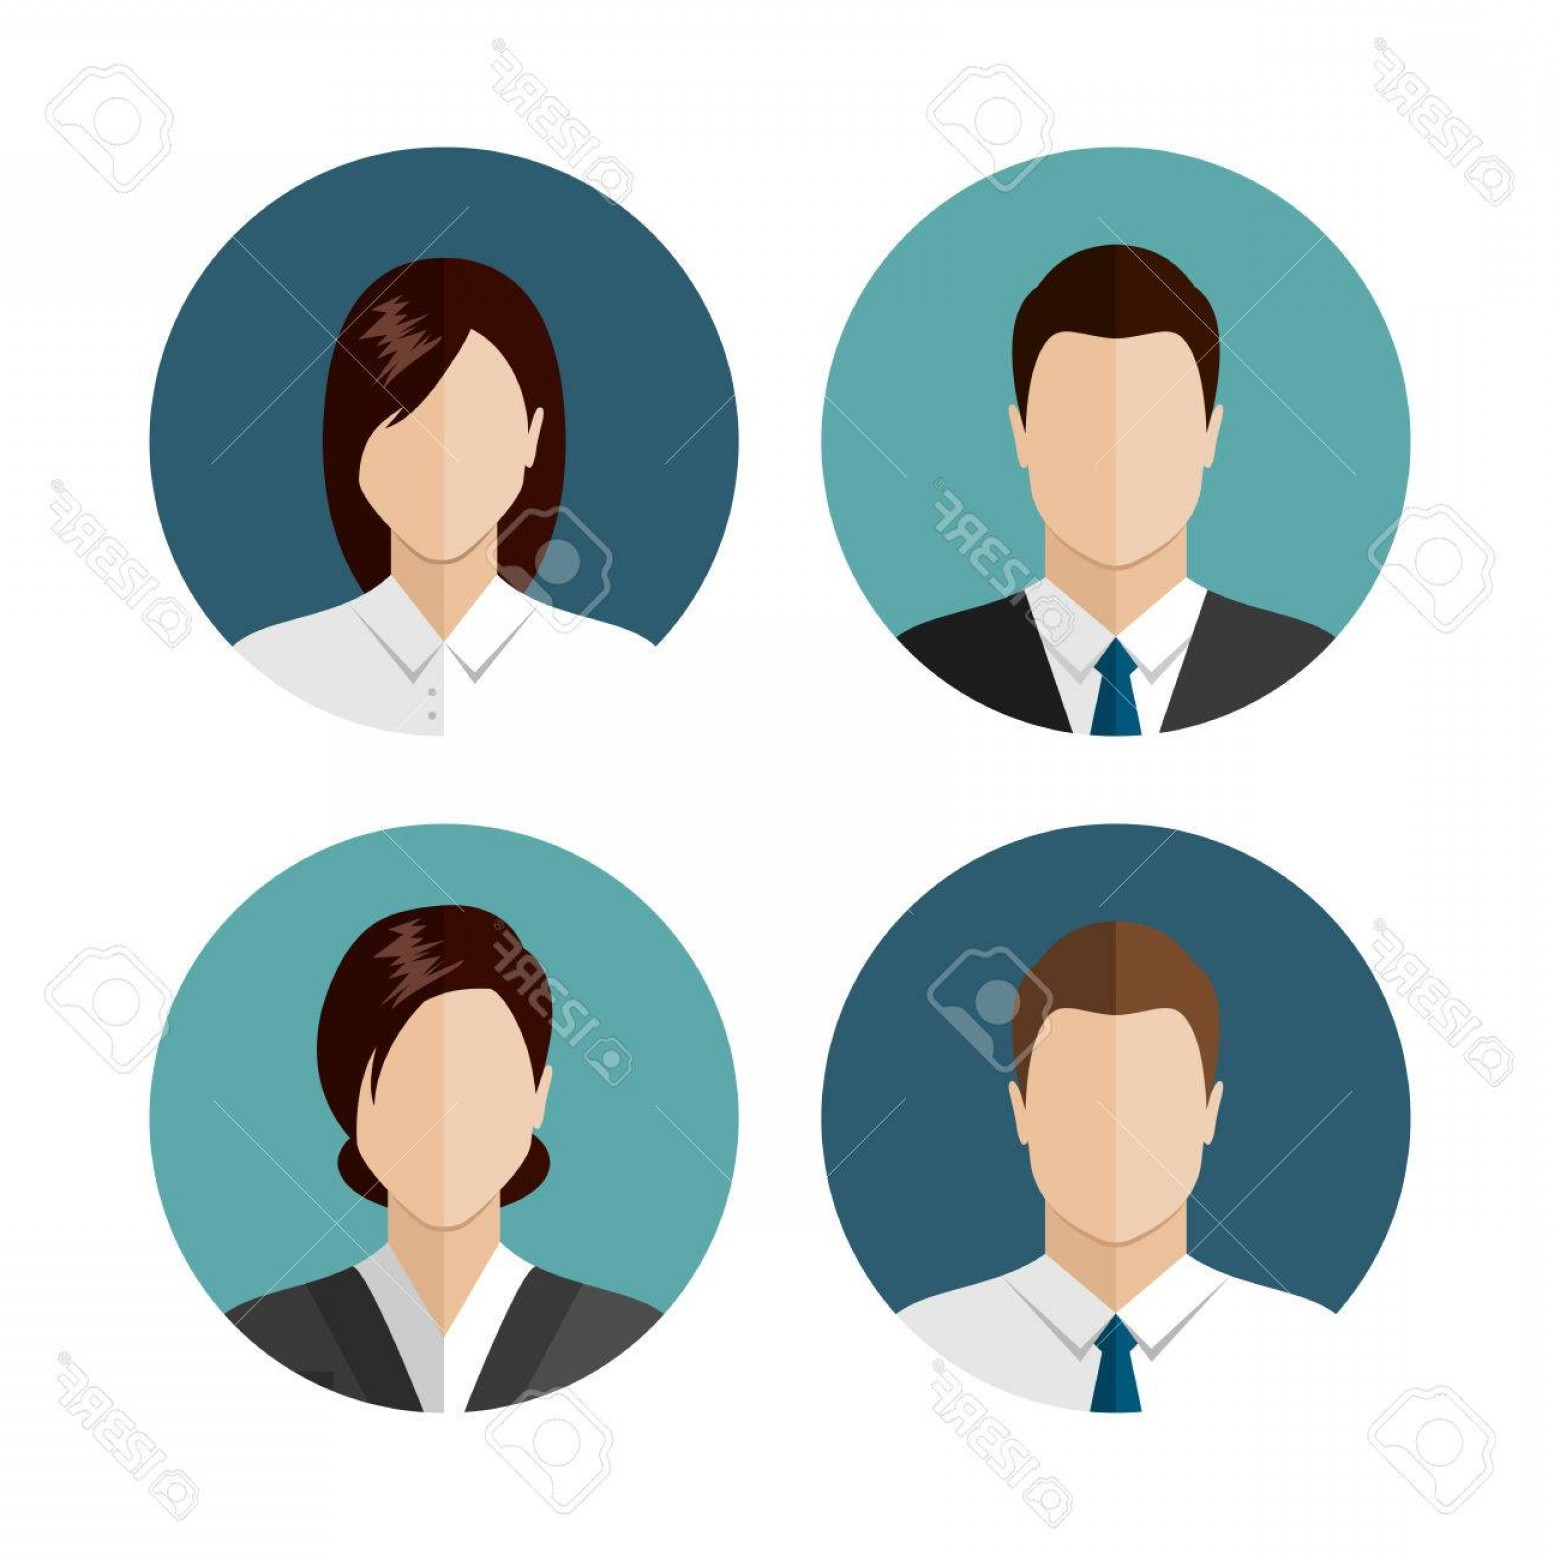 Free Vector Business People Icon: Photostock Vector Business People Icons Isolated On White Background Circle Avatar Collection Modern Flat Style Design